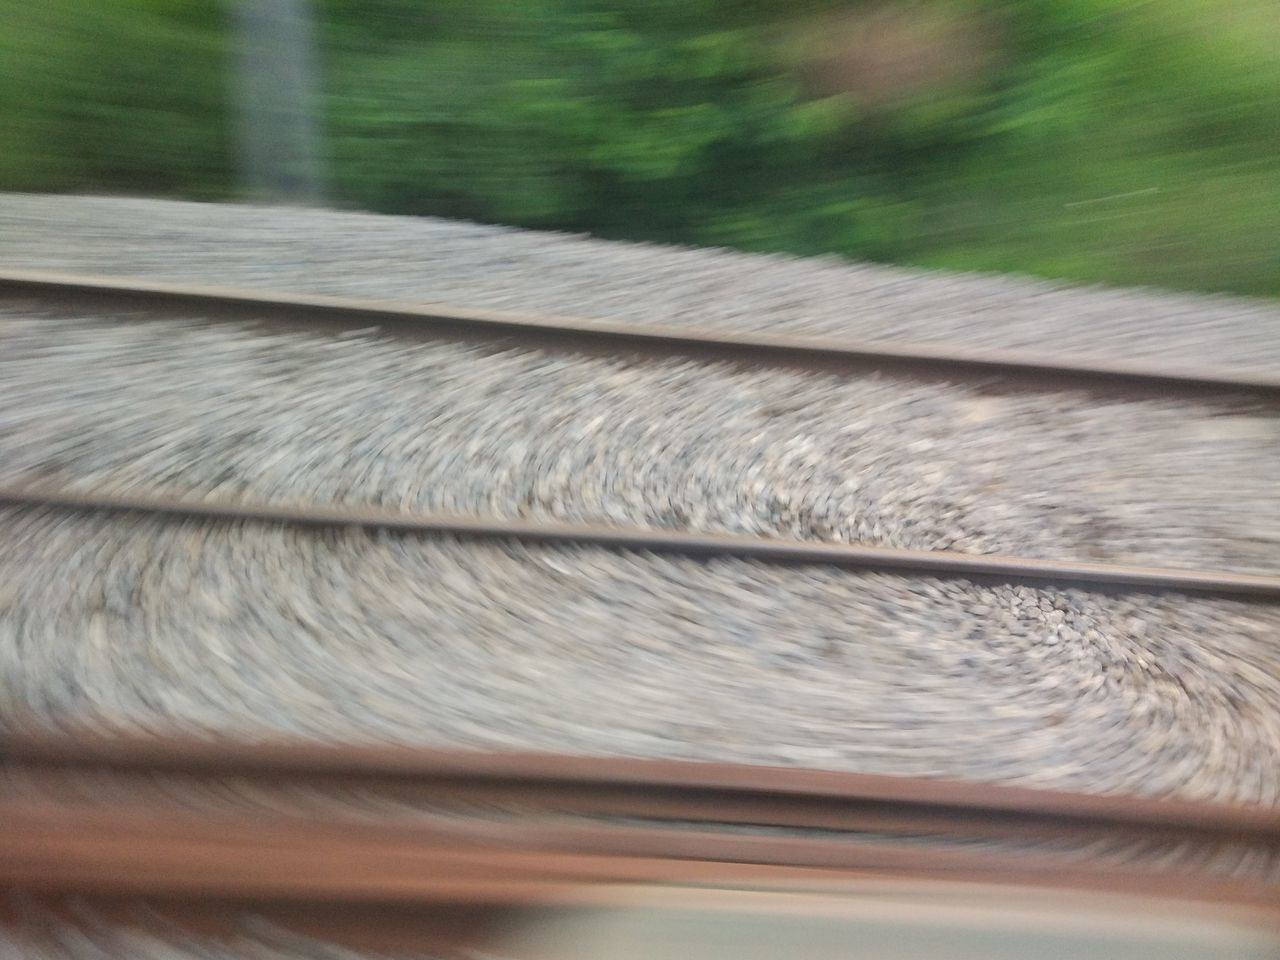 Blurred Motion Close-up Day EyeEmNewHere Focus Metal Motion Moving No People Outdoors Railroad Track Railway Railway Track Rusty Stones Stones And Pebbles